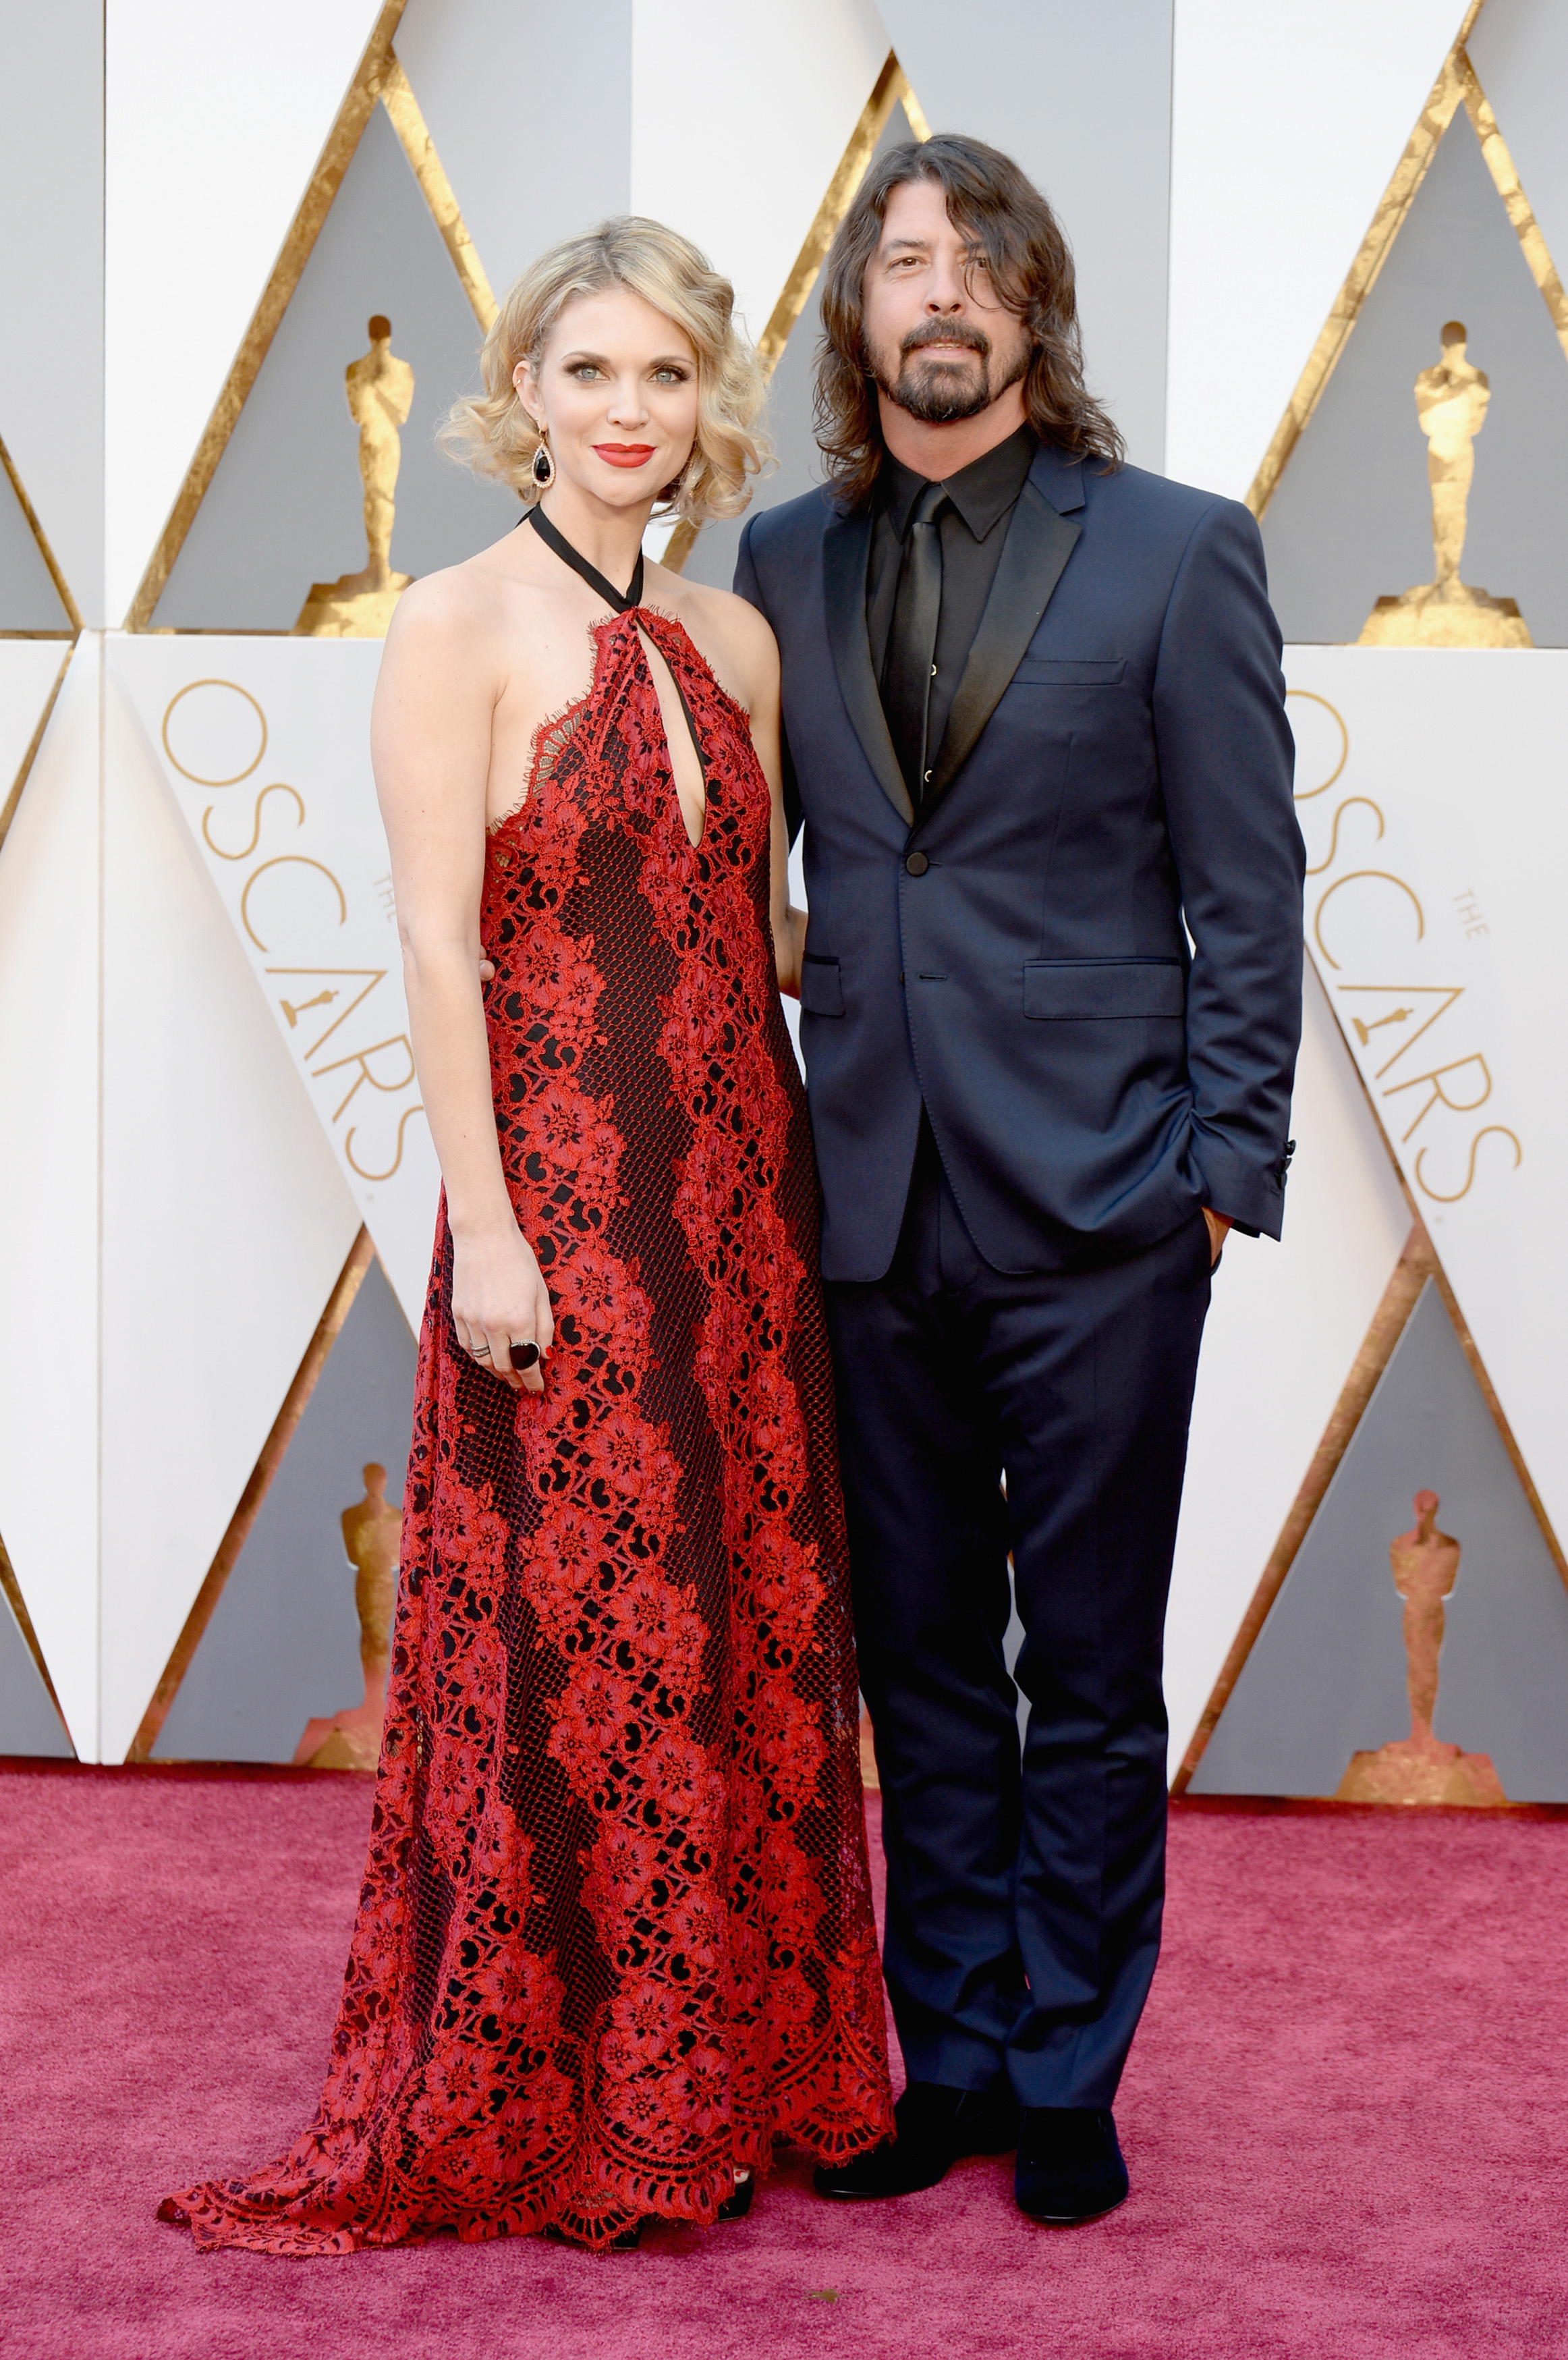 Jordyn Blum and Dave Grohl attend the 88th Annual Academy Awards on Feb. 28, 2016 in Hollywood, Calif.